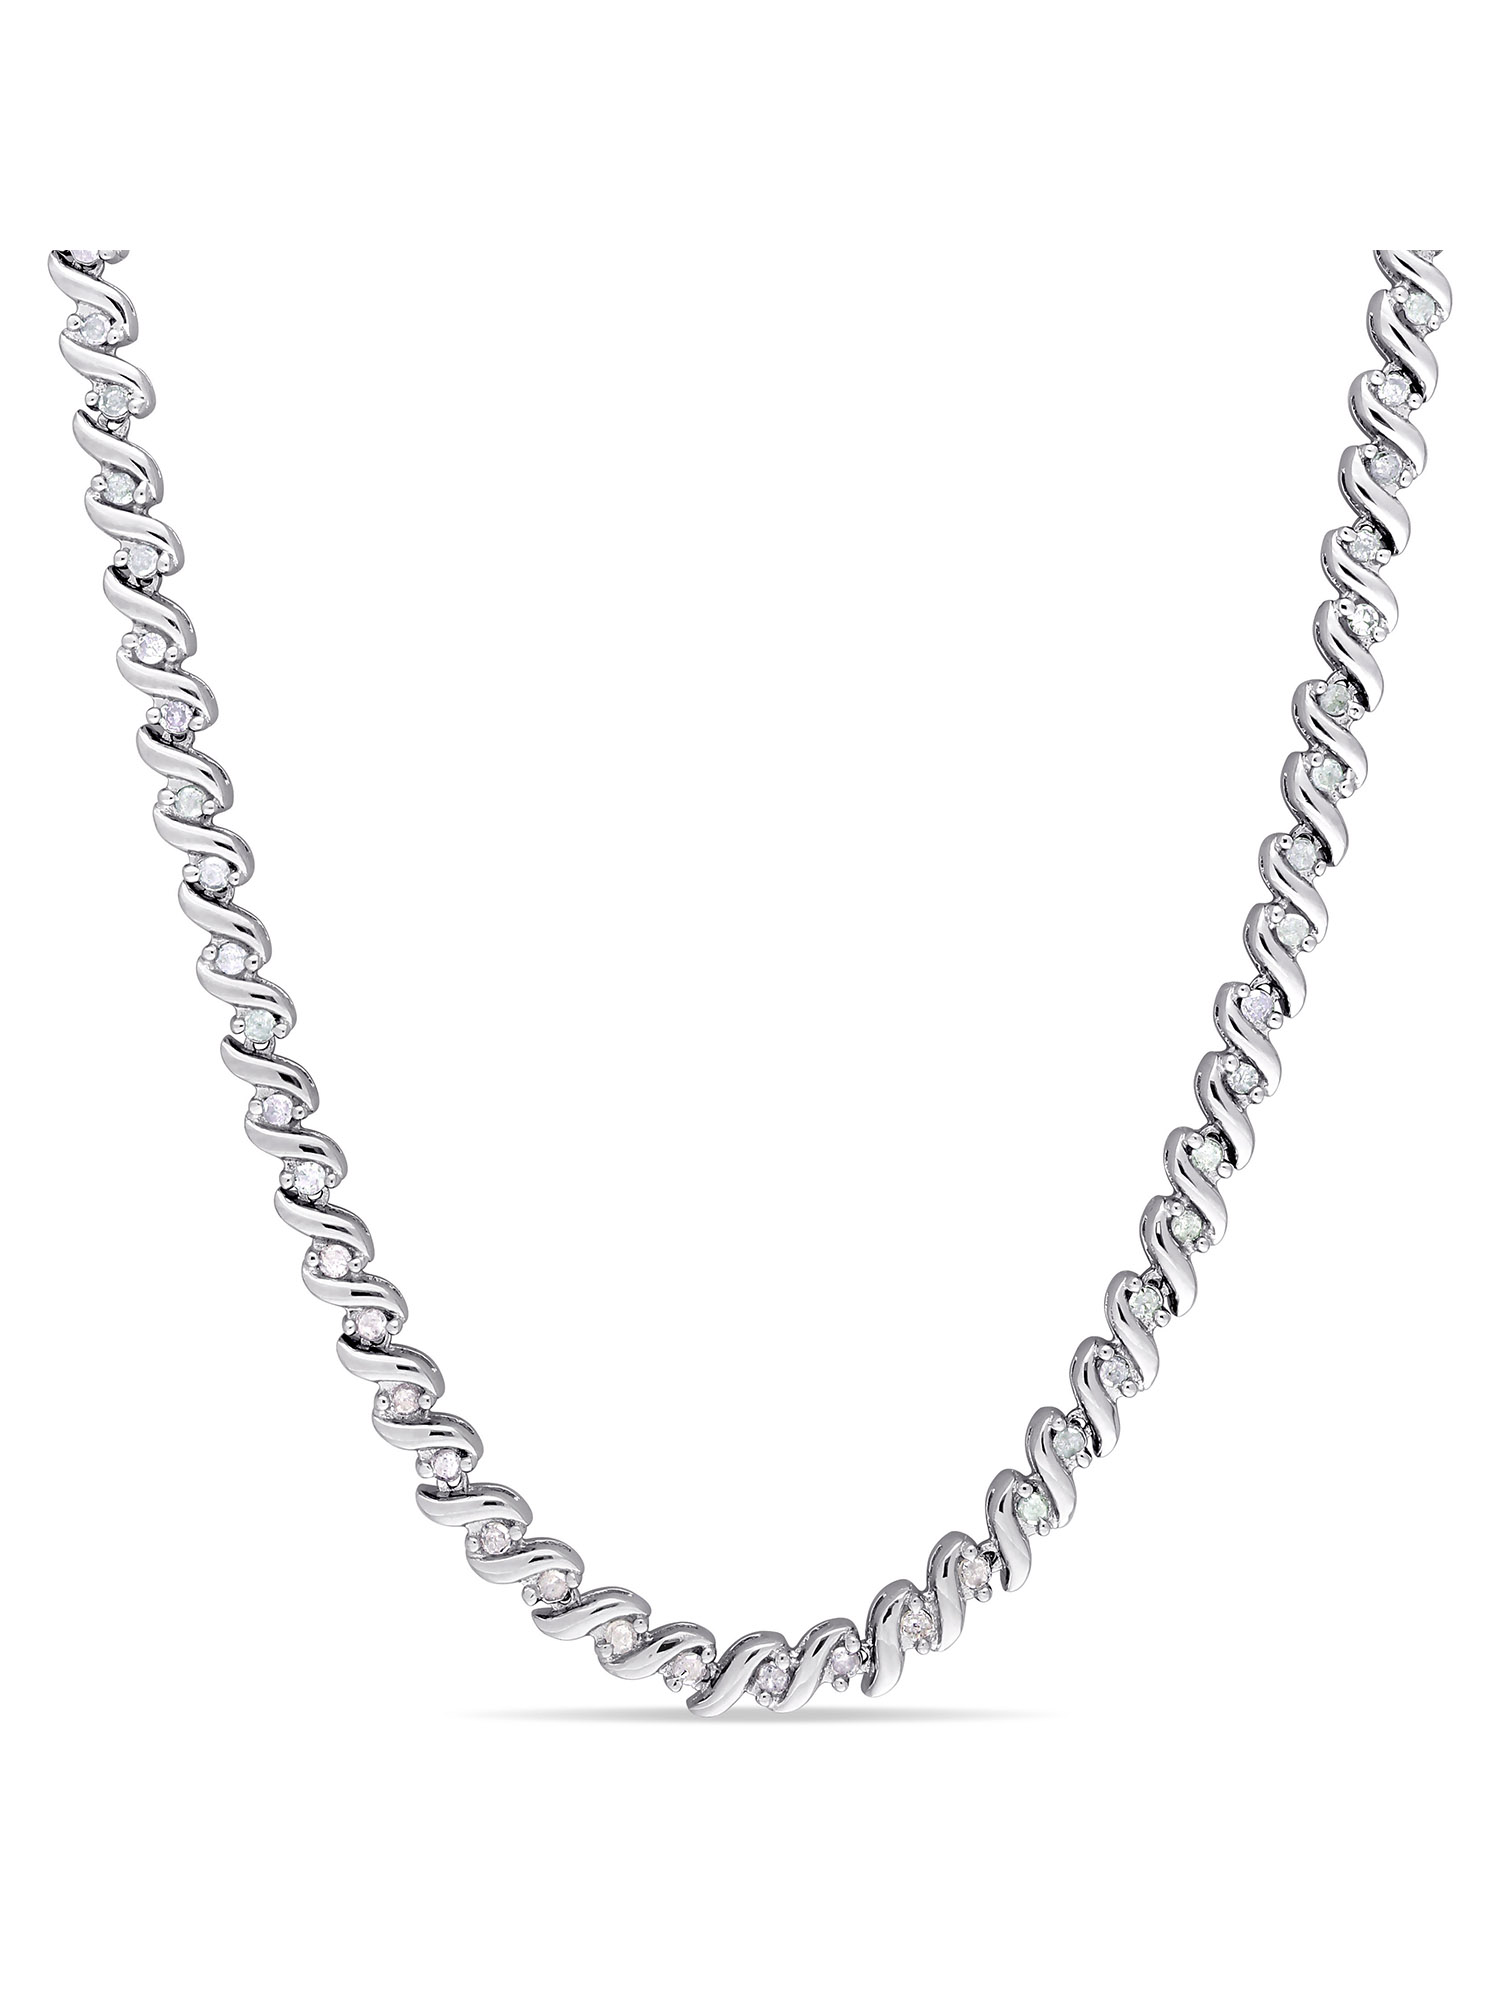 "Miabella 1 Carat T.W. Diamond Sterling Silver Tennis Necklace, 17"" by Miabella"